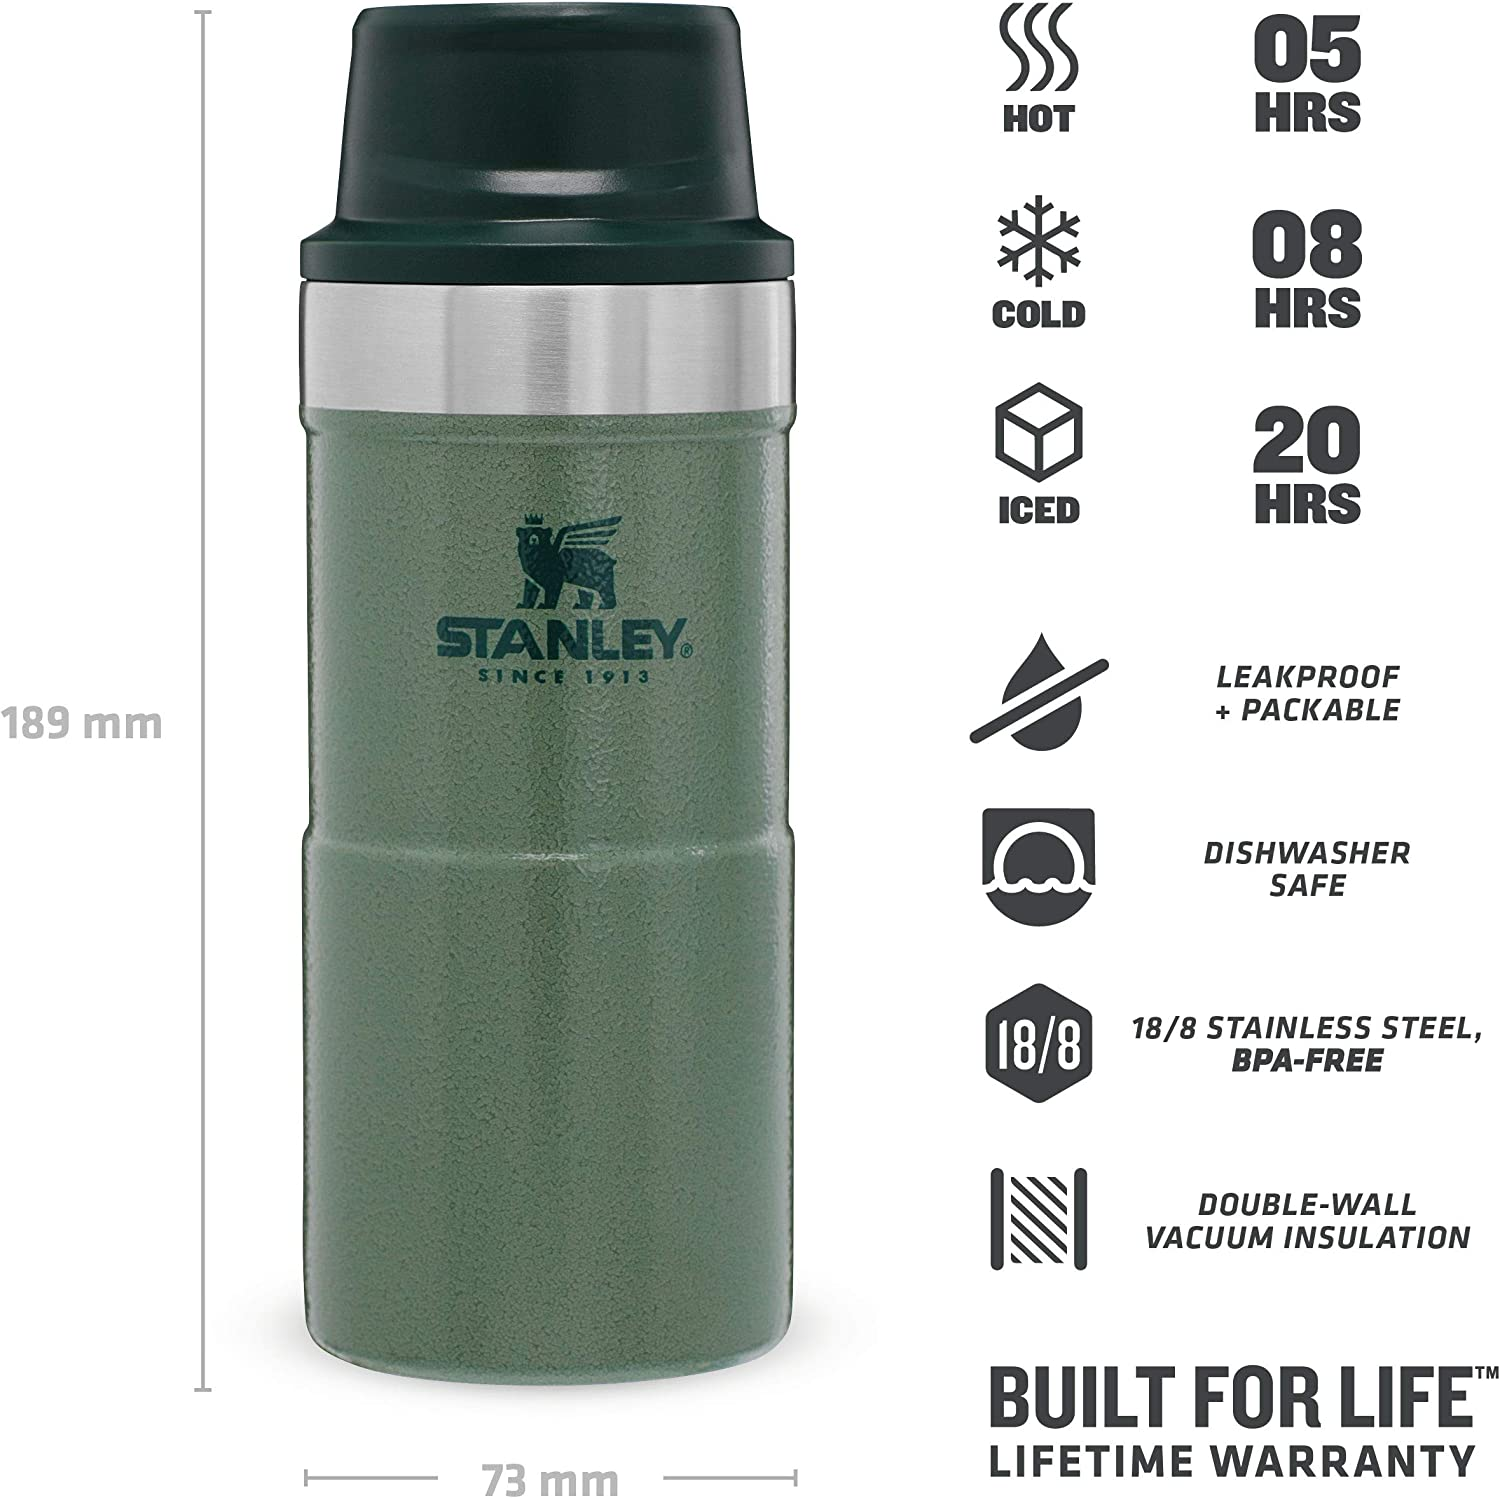 BPA FREE Stainless Steel Thermos Dishwasher Safe Keeps Cold or Hot for 20 Hours Leakproof Lid Doubles as Cup Stanley Classic Legendary Bottle 0.75L // 25OZ Nightfall